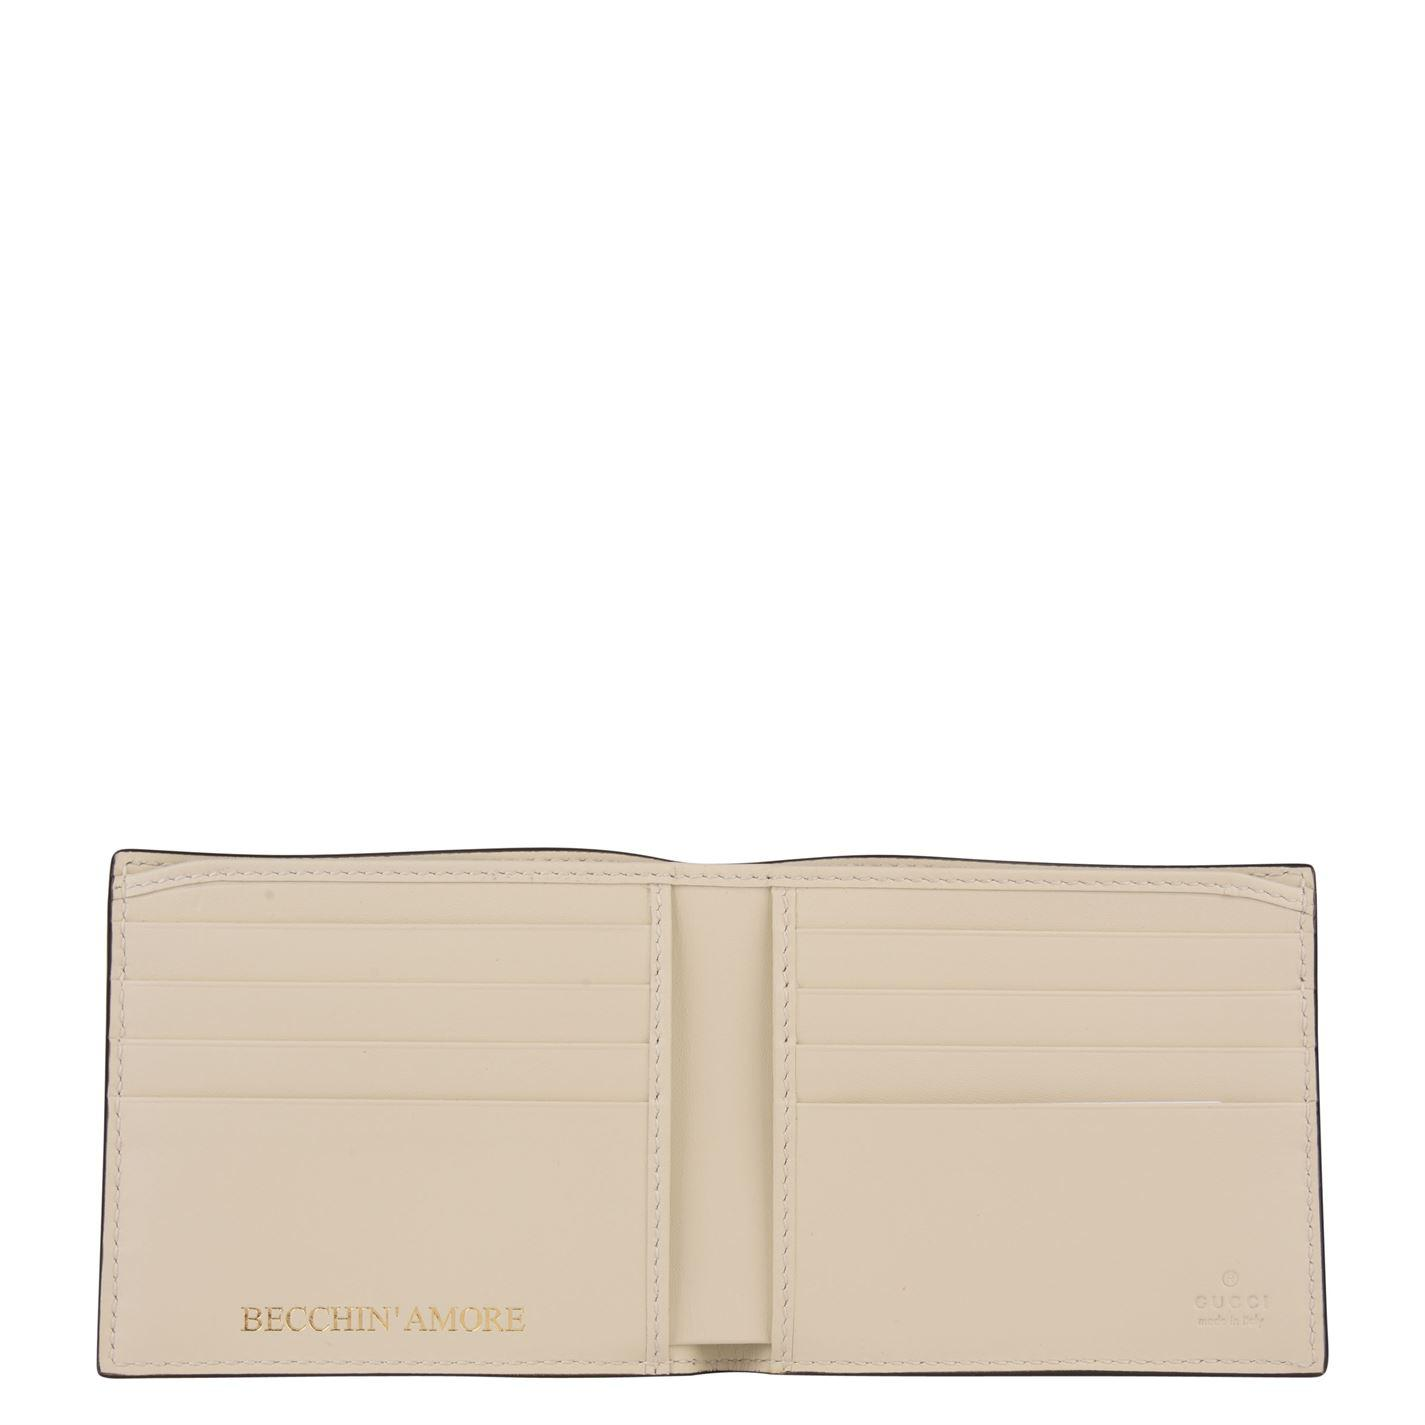 6b74d801a01 Gucci - White Guccy Bifold Wallet for Men - Lyst. View fullscreen